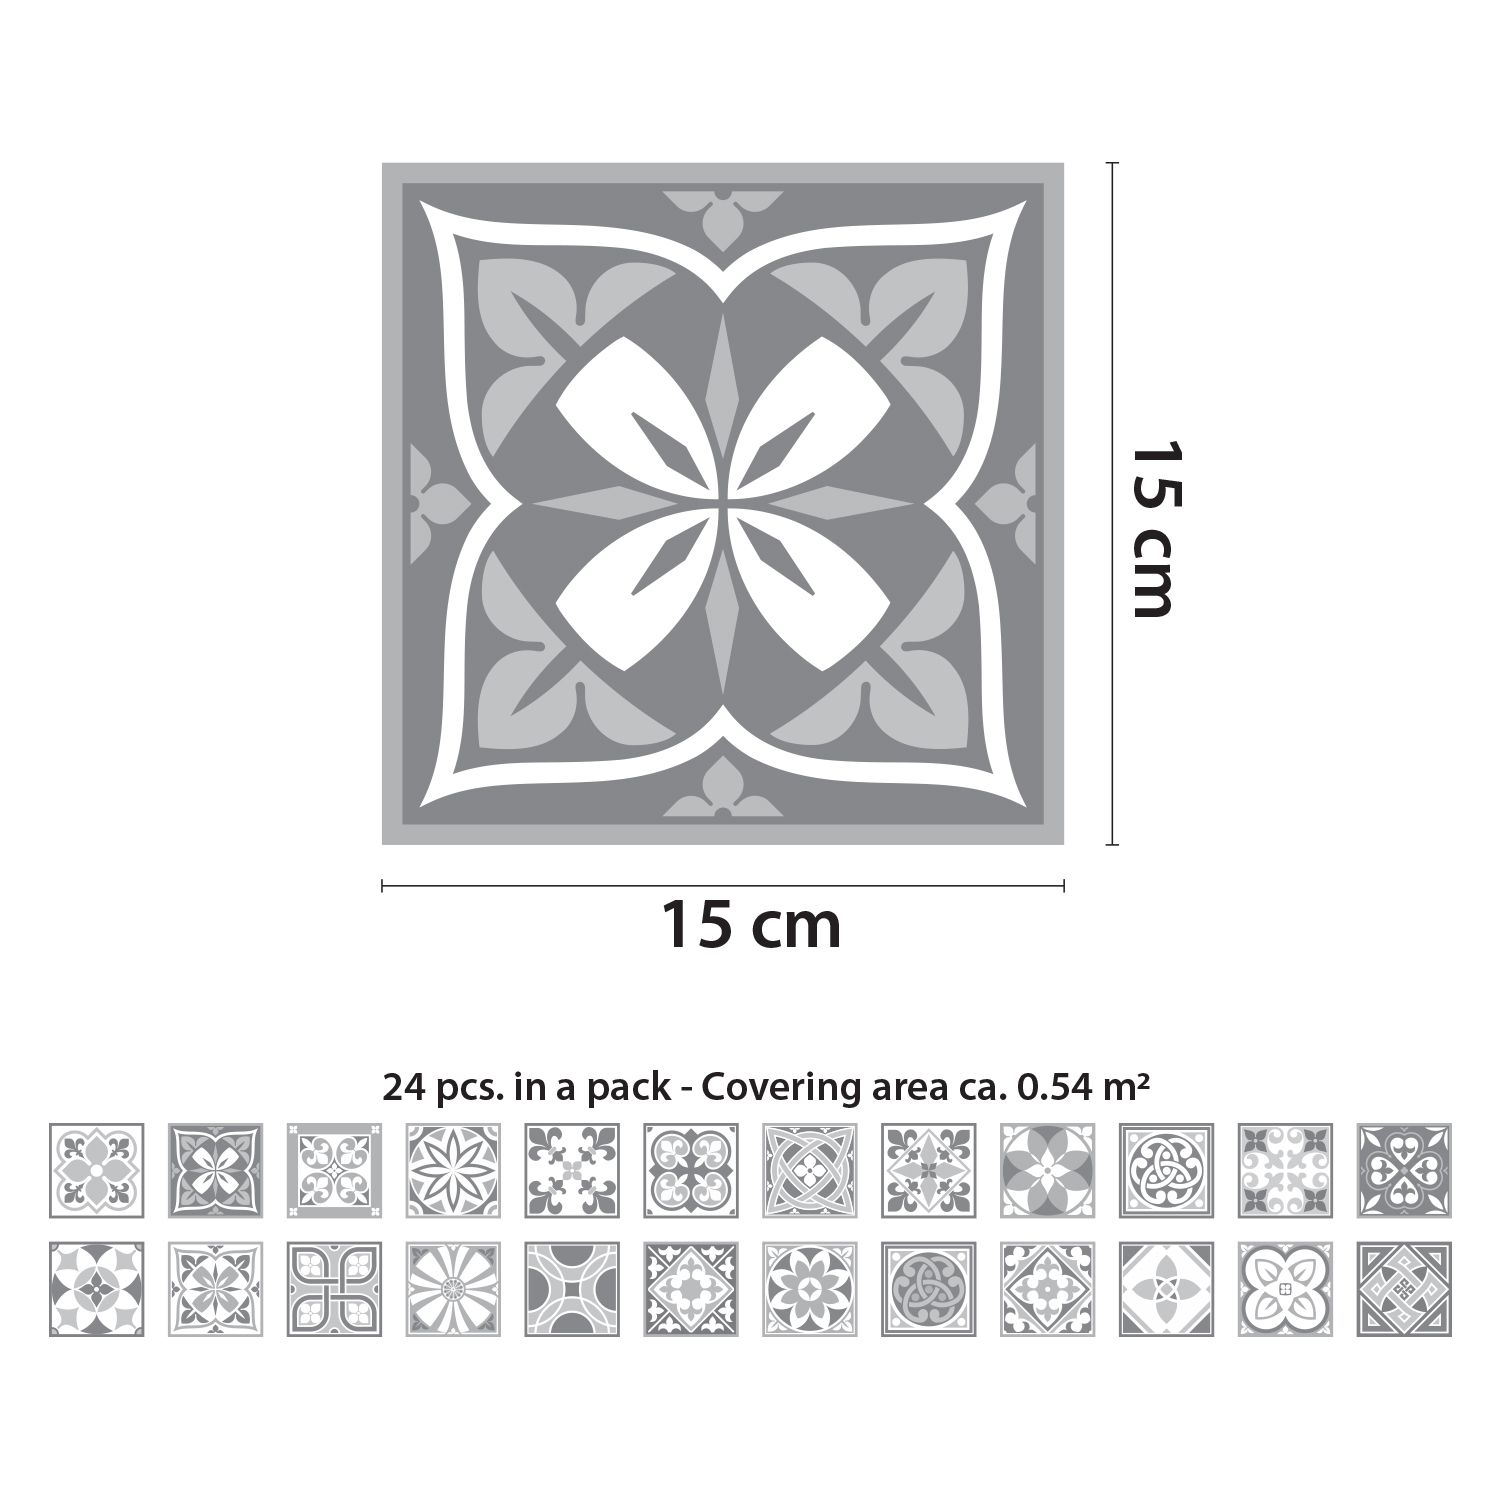 Purbeck Stone Tiles Wall Stickers - 15 cm x 15 cm - 24 pcs.